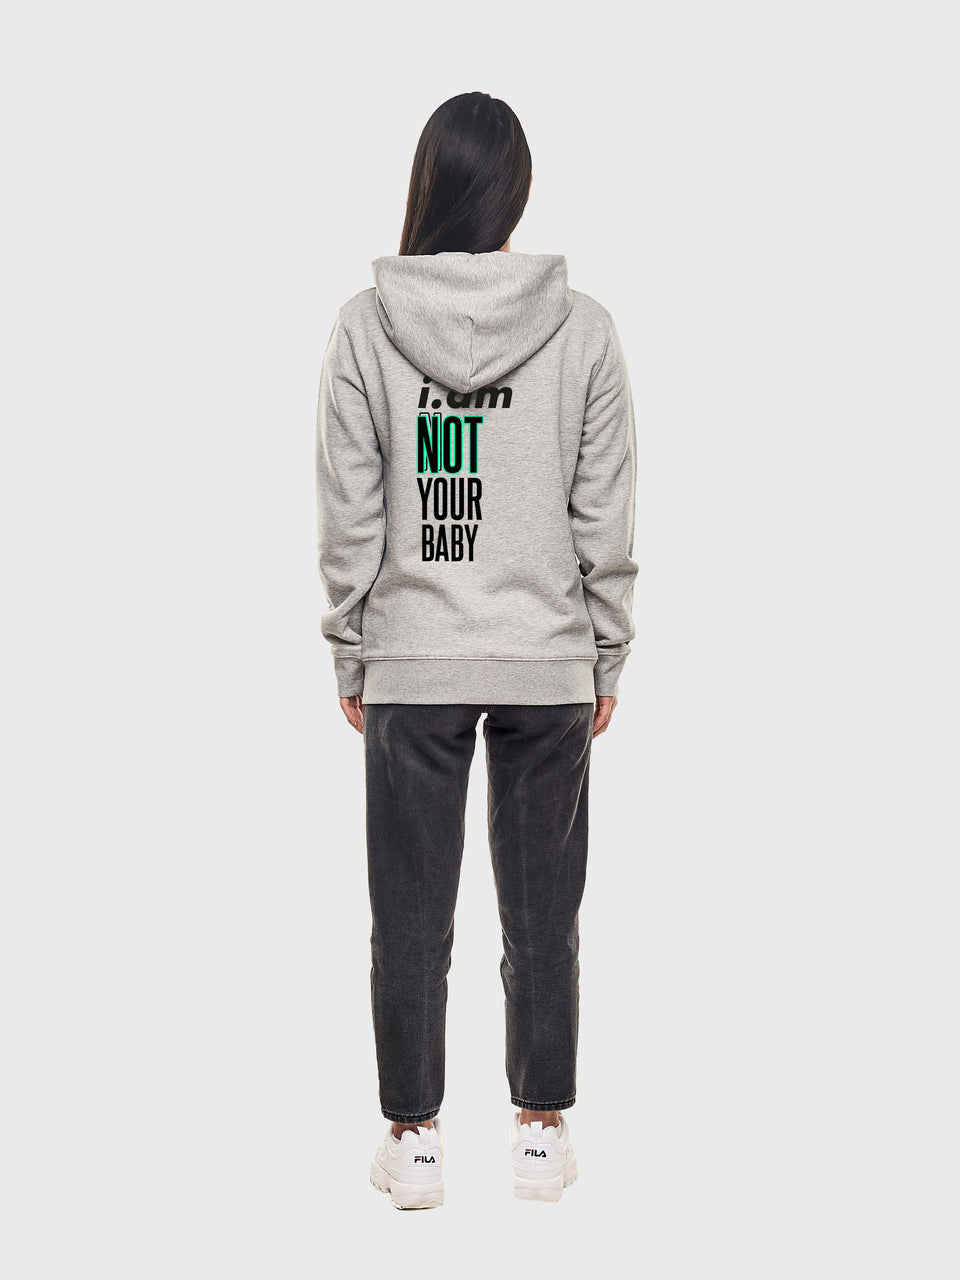 Not your baby - Grey - unisex pull over hoodie